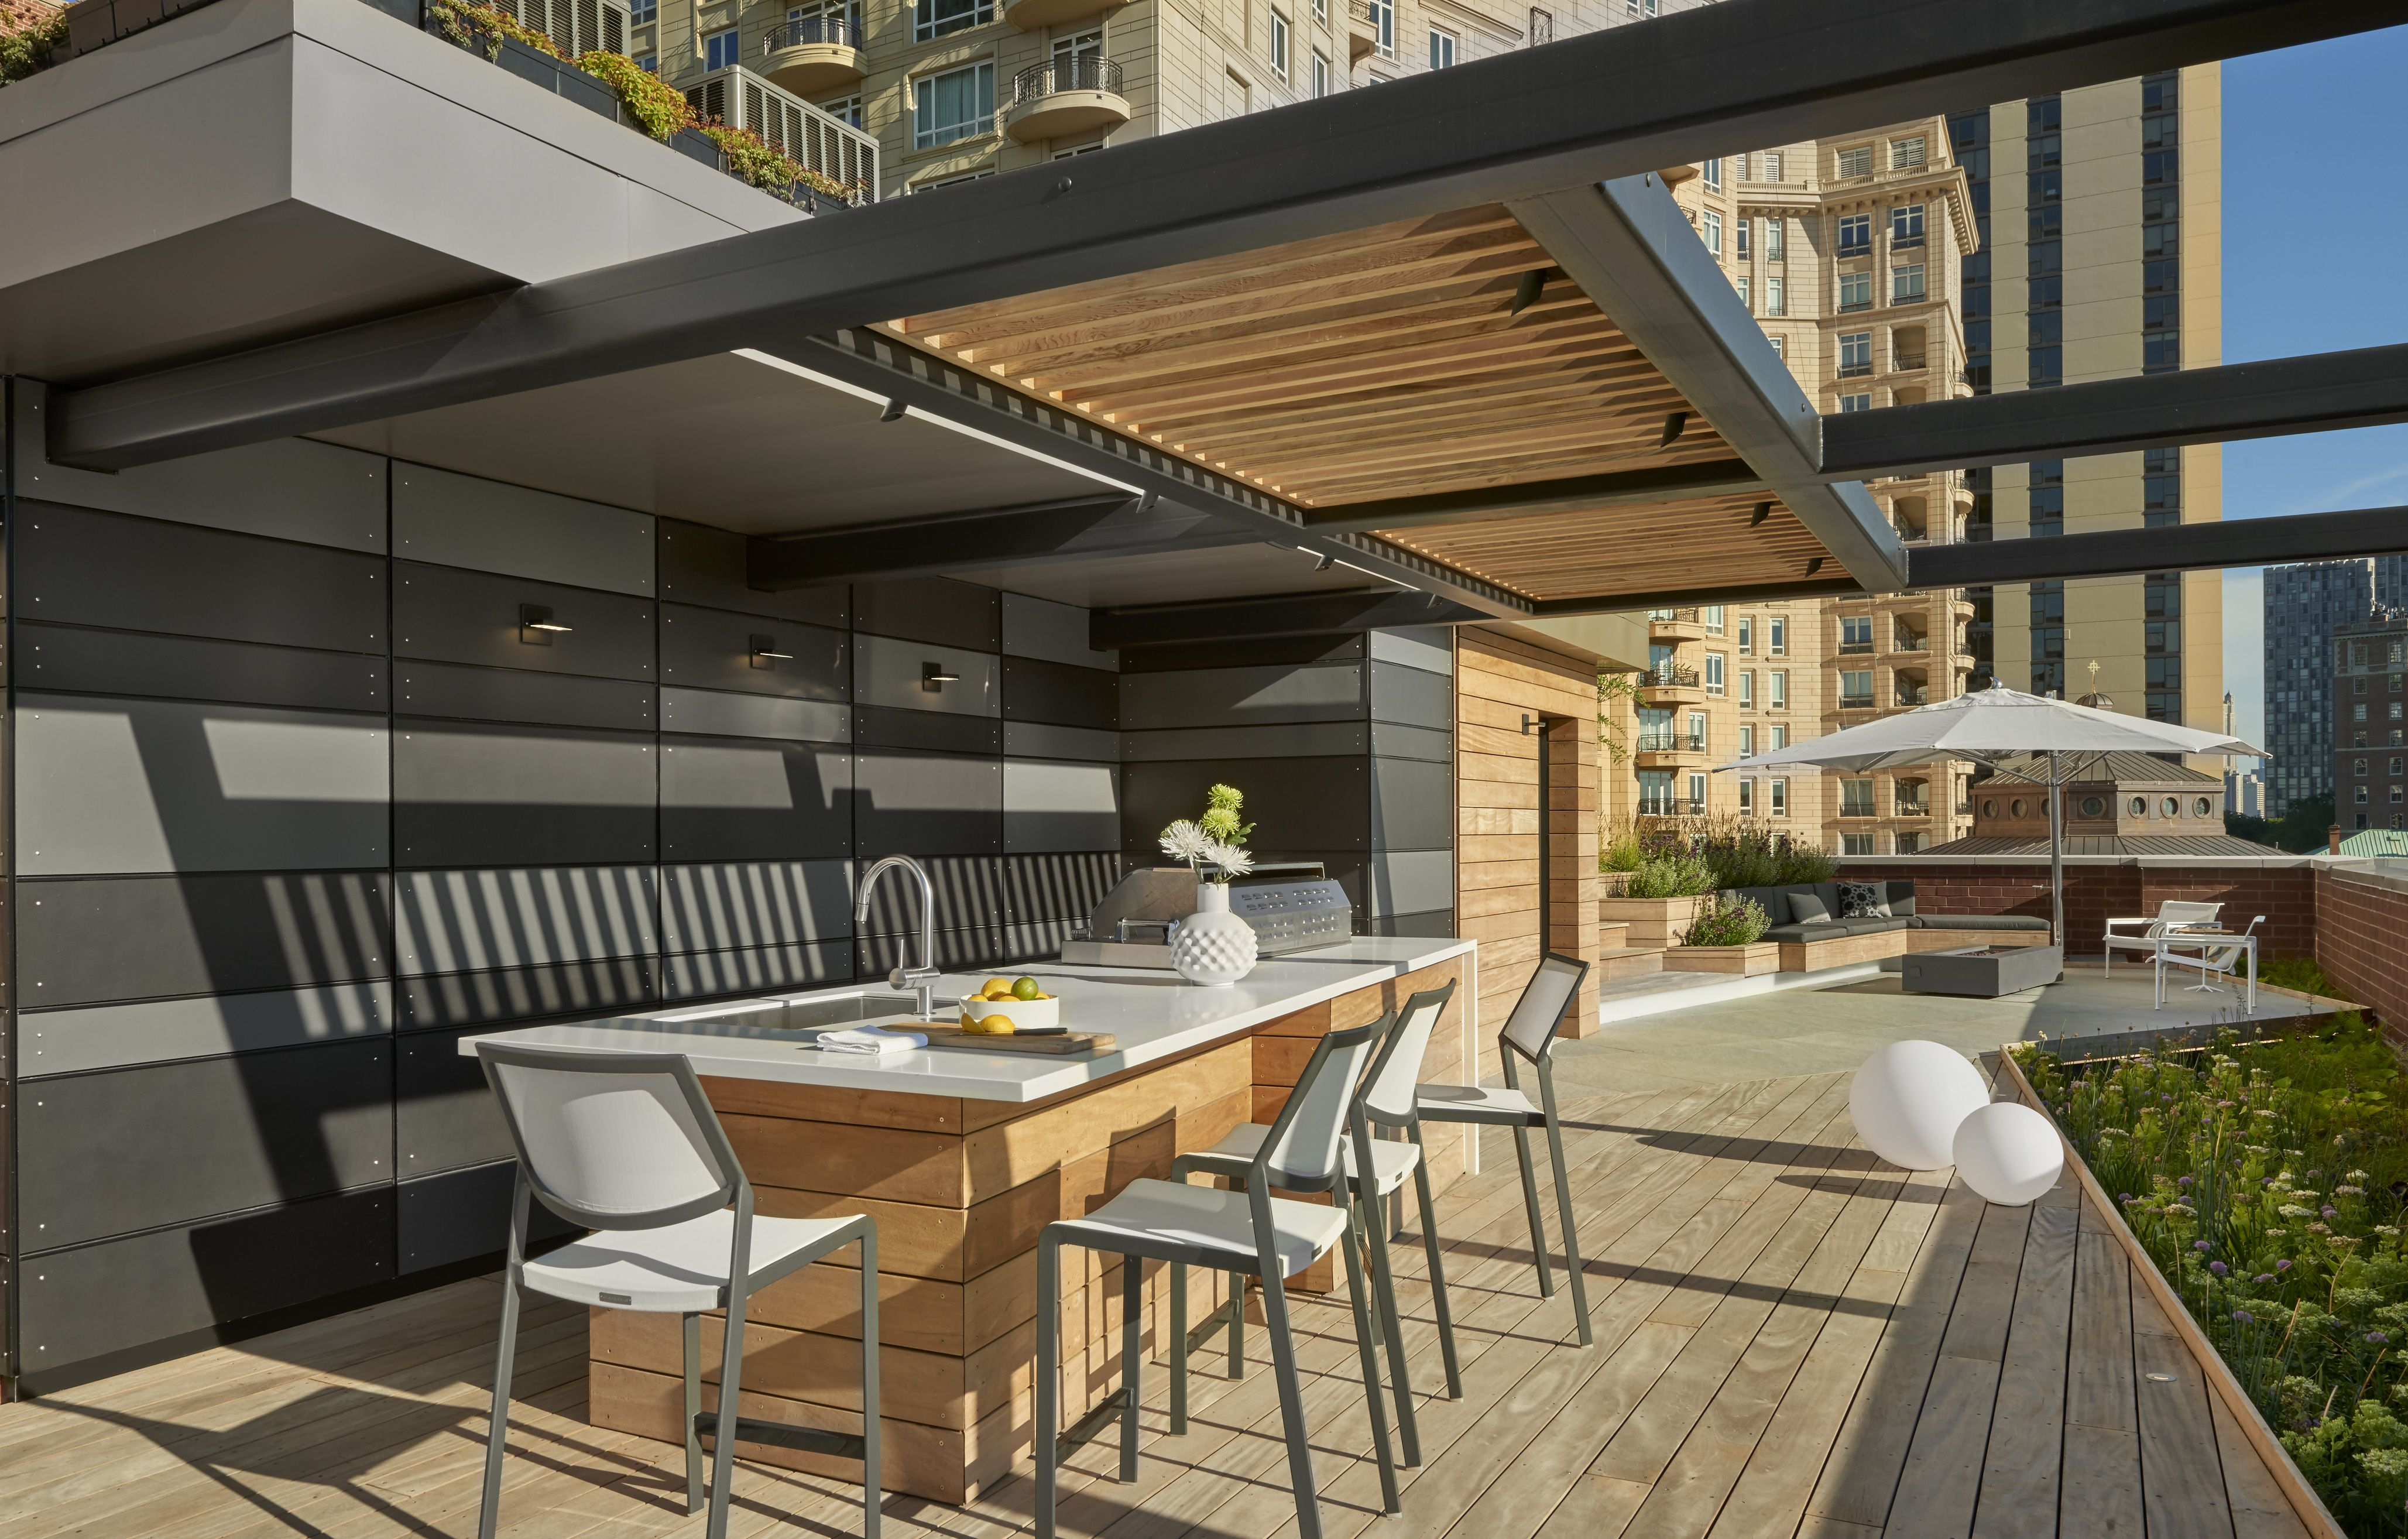 Dspace-rooftop Yard- Outdoor Kitchen With Steel & Wood